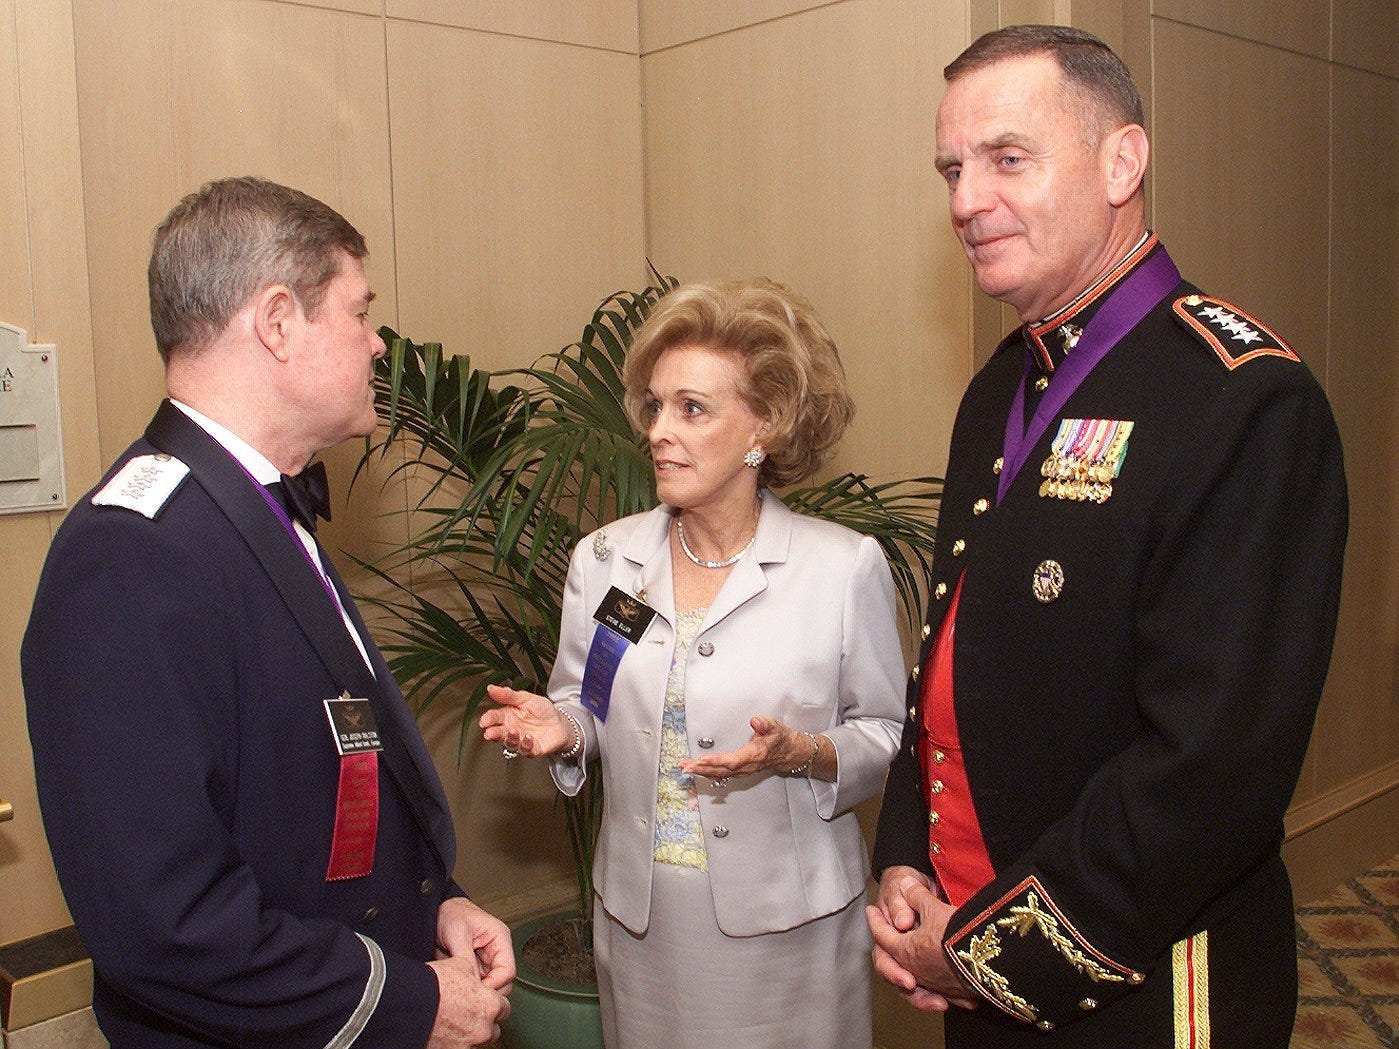 Steve Eller (center) talks with Gen. Joe Ralston (left), the Supreme Allied Commander, Europe, and Gen. Jim Jones, the Commandant of the Marine Corps, at a VIP gathering before the American Academy banquet at the Phoenician resort on July 17, 2000.